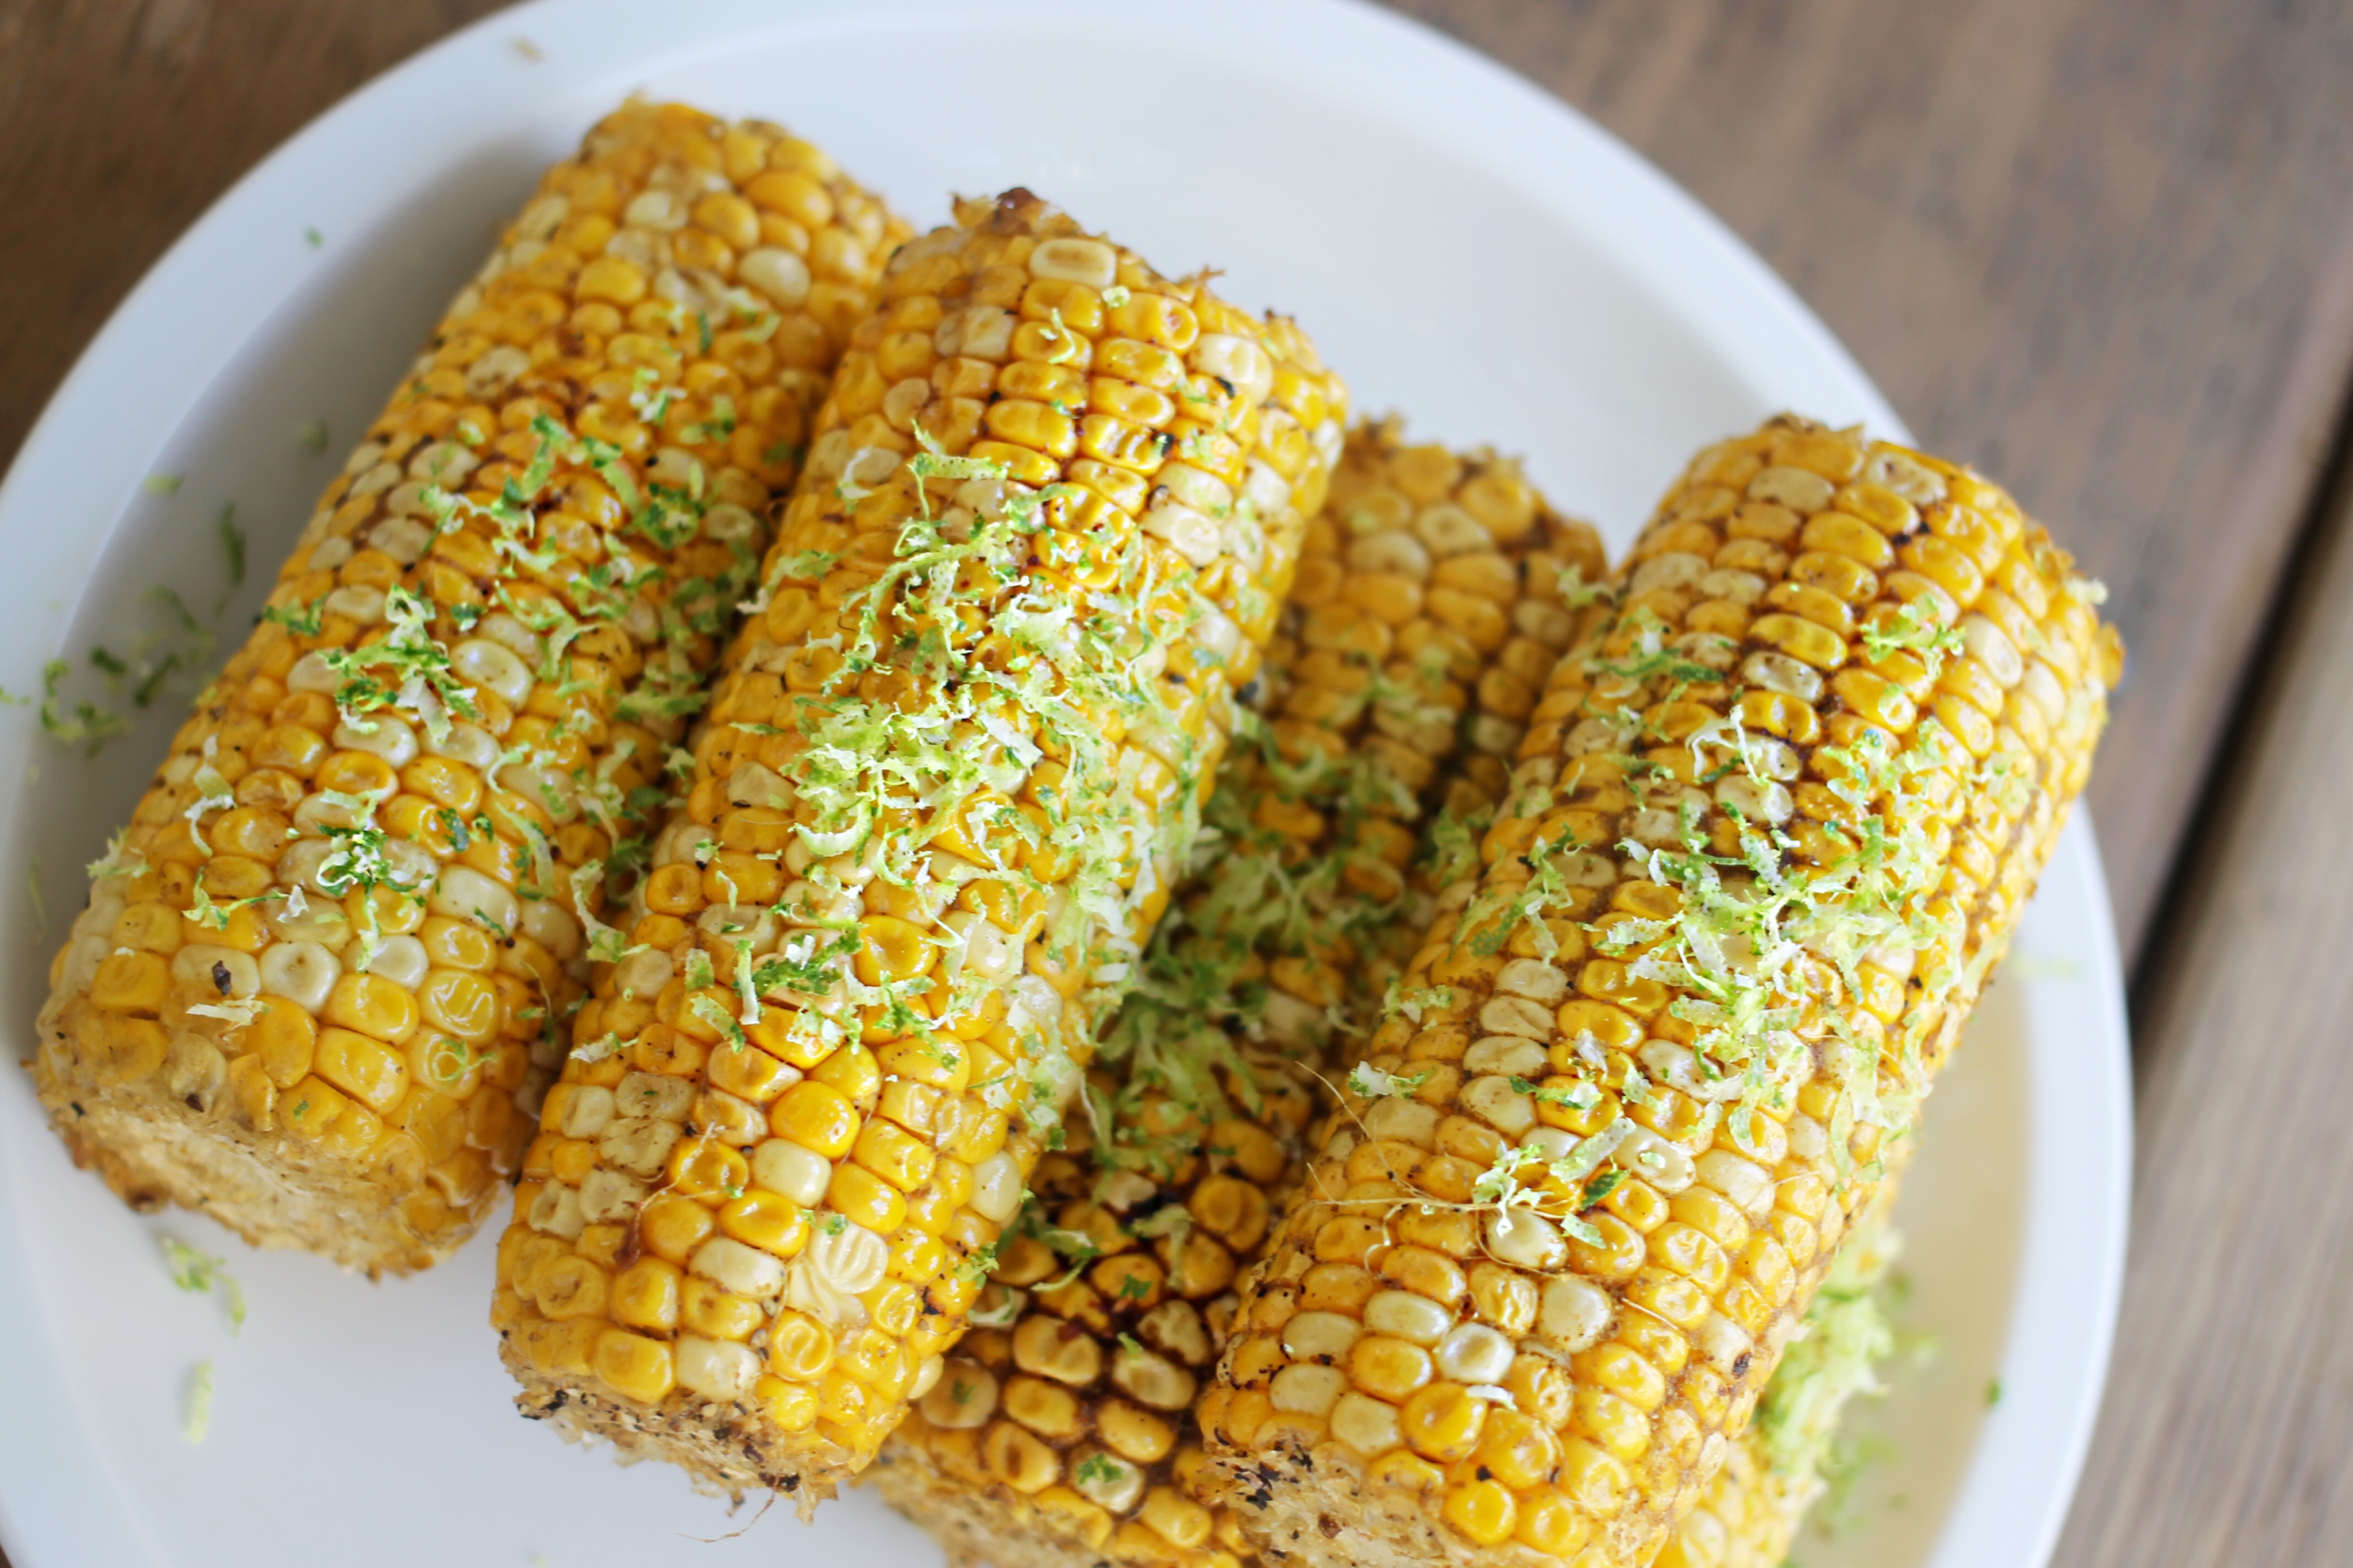 The corn was insanely good and so simple. Olive oil, salt, pepper and ...